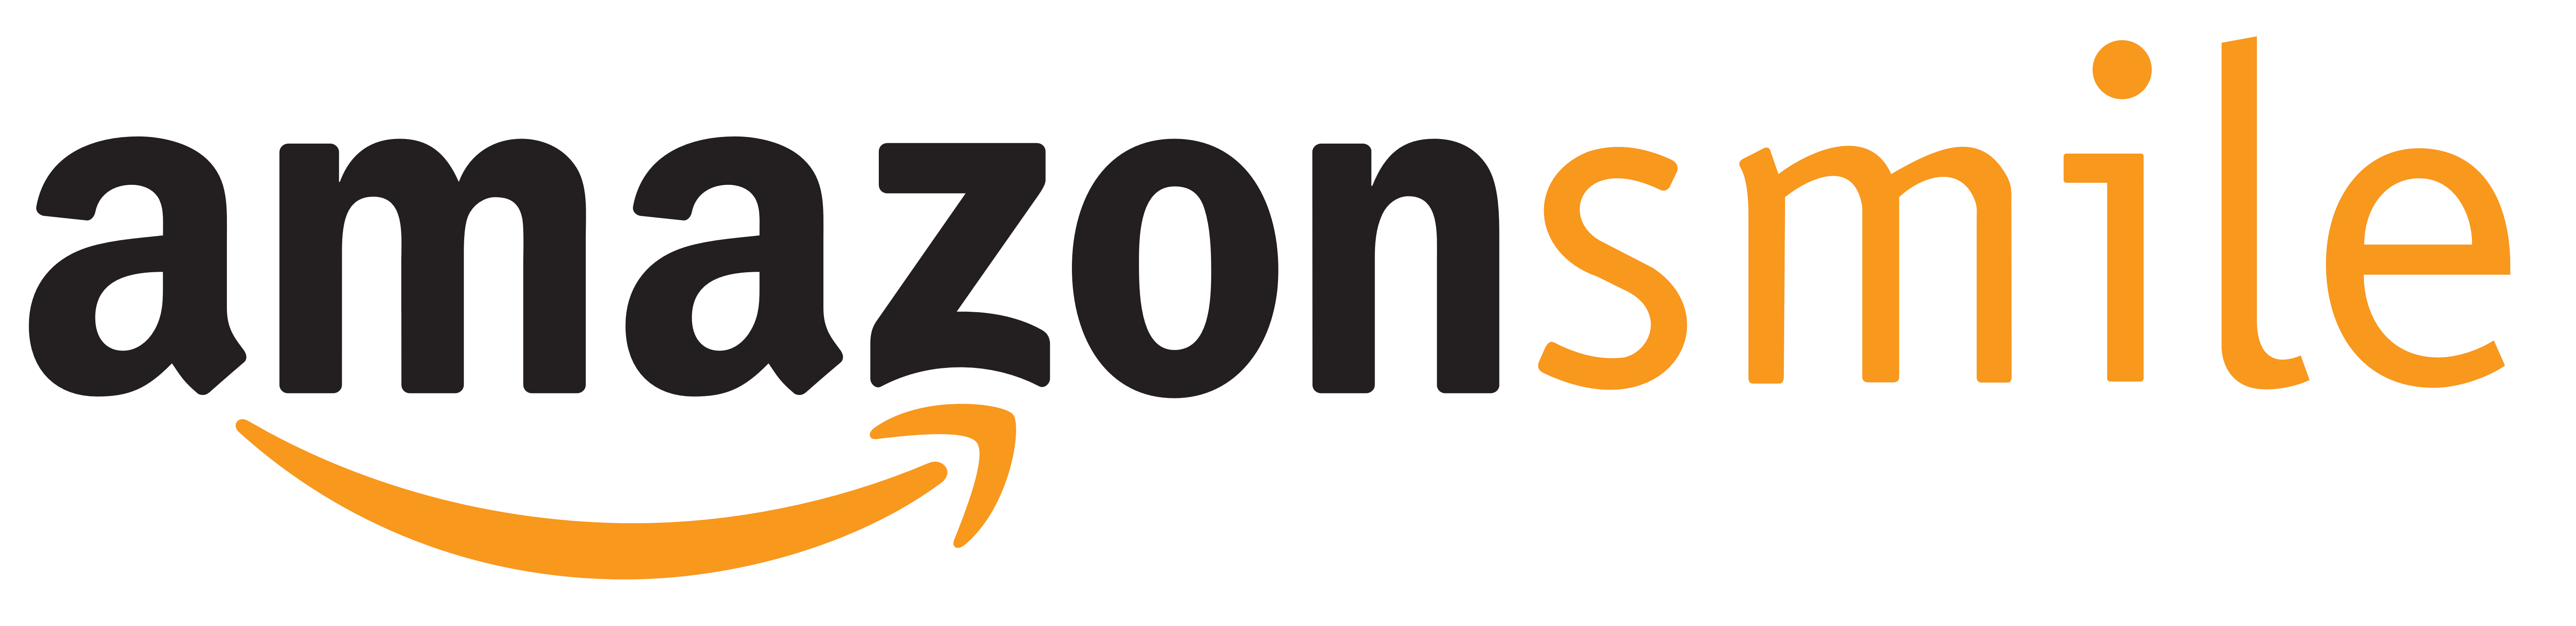 The AmazonSmile logo